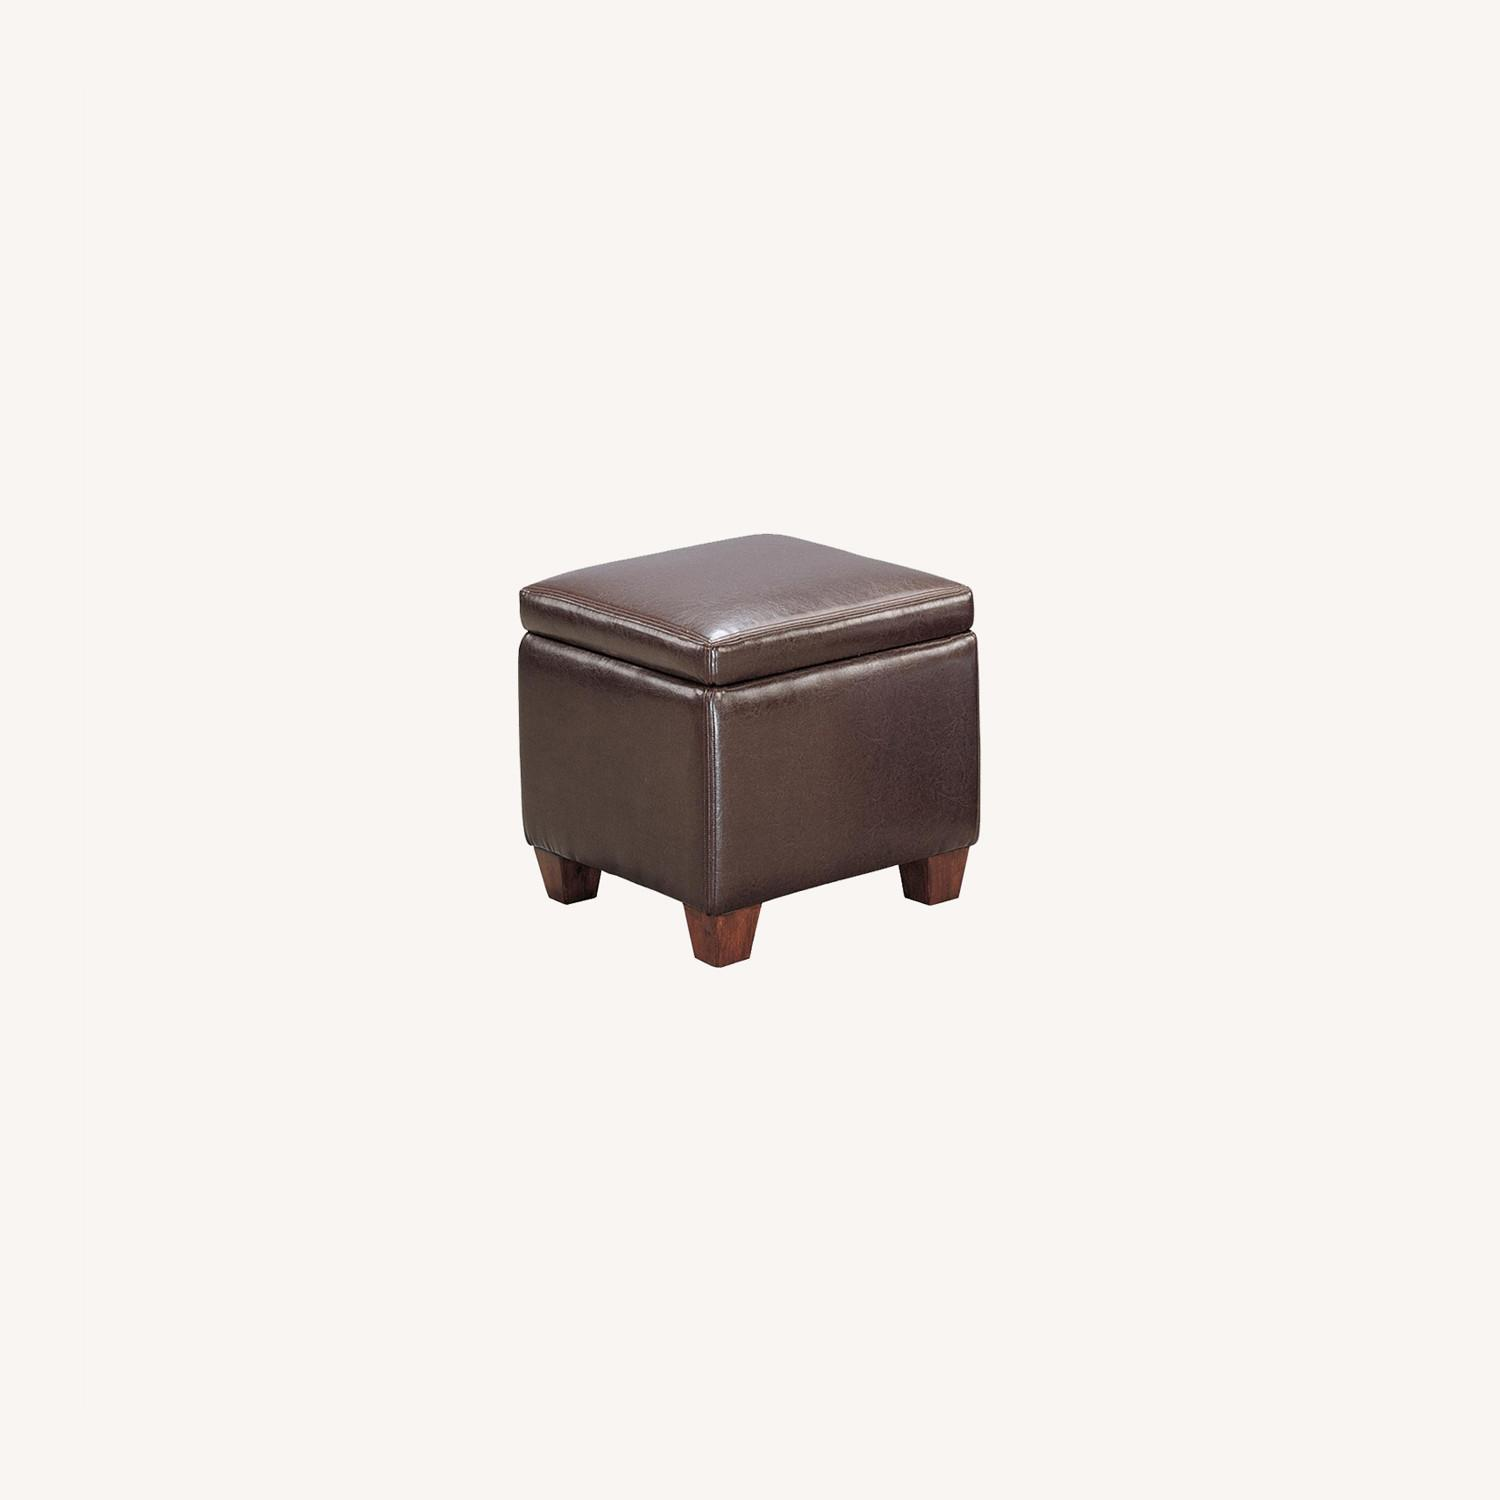 Ottoman In Cube-Shaped Dark Brown Finish - image-3